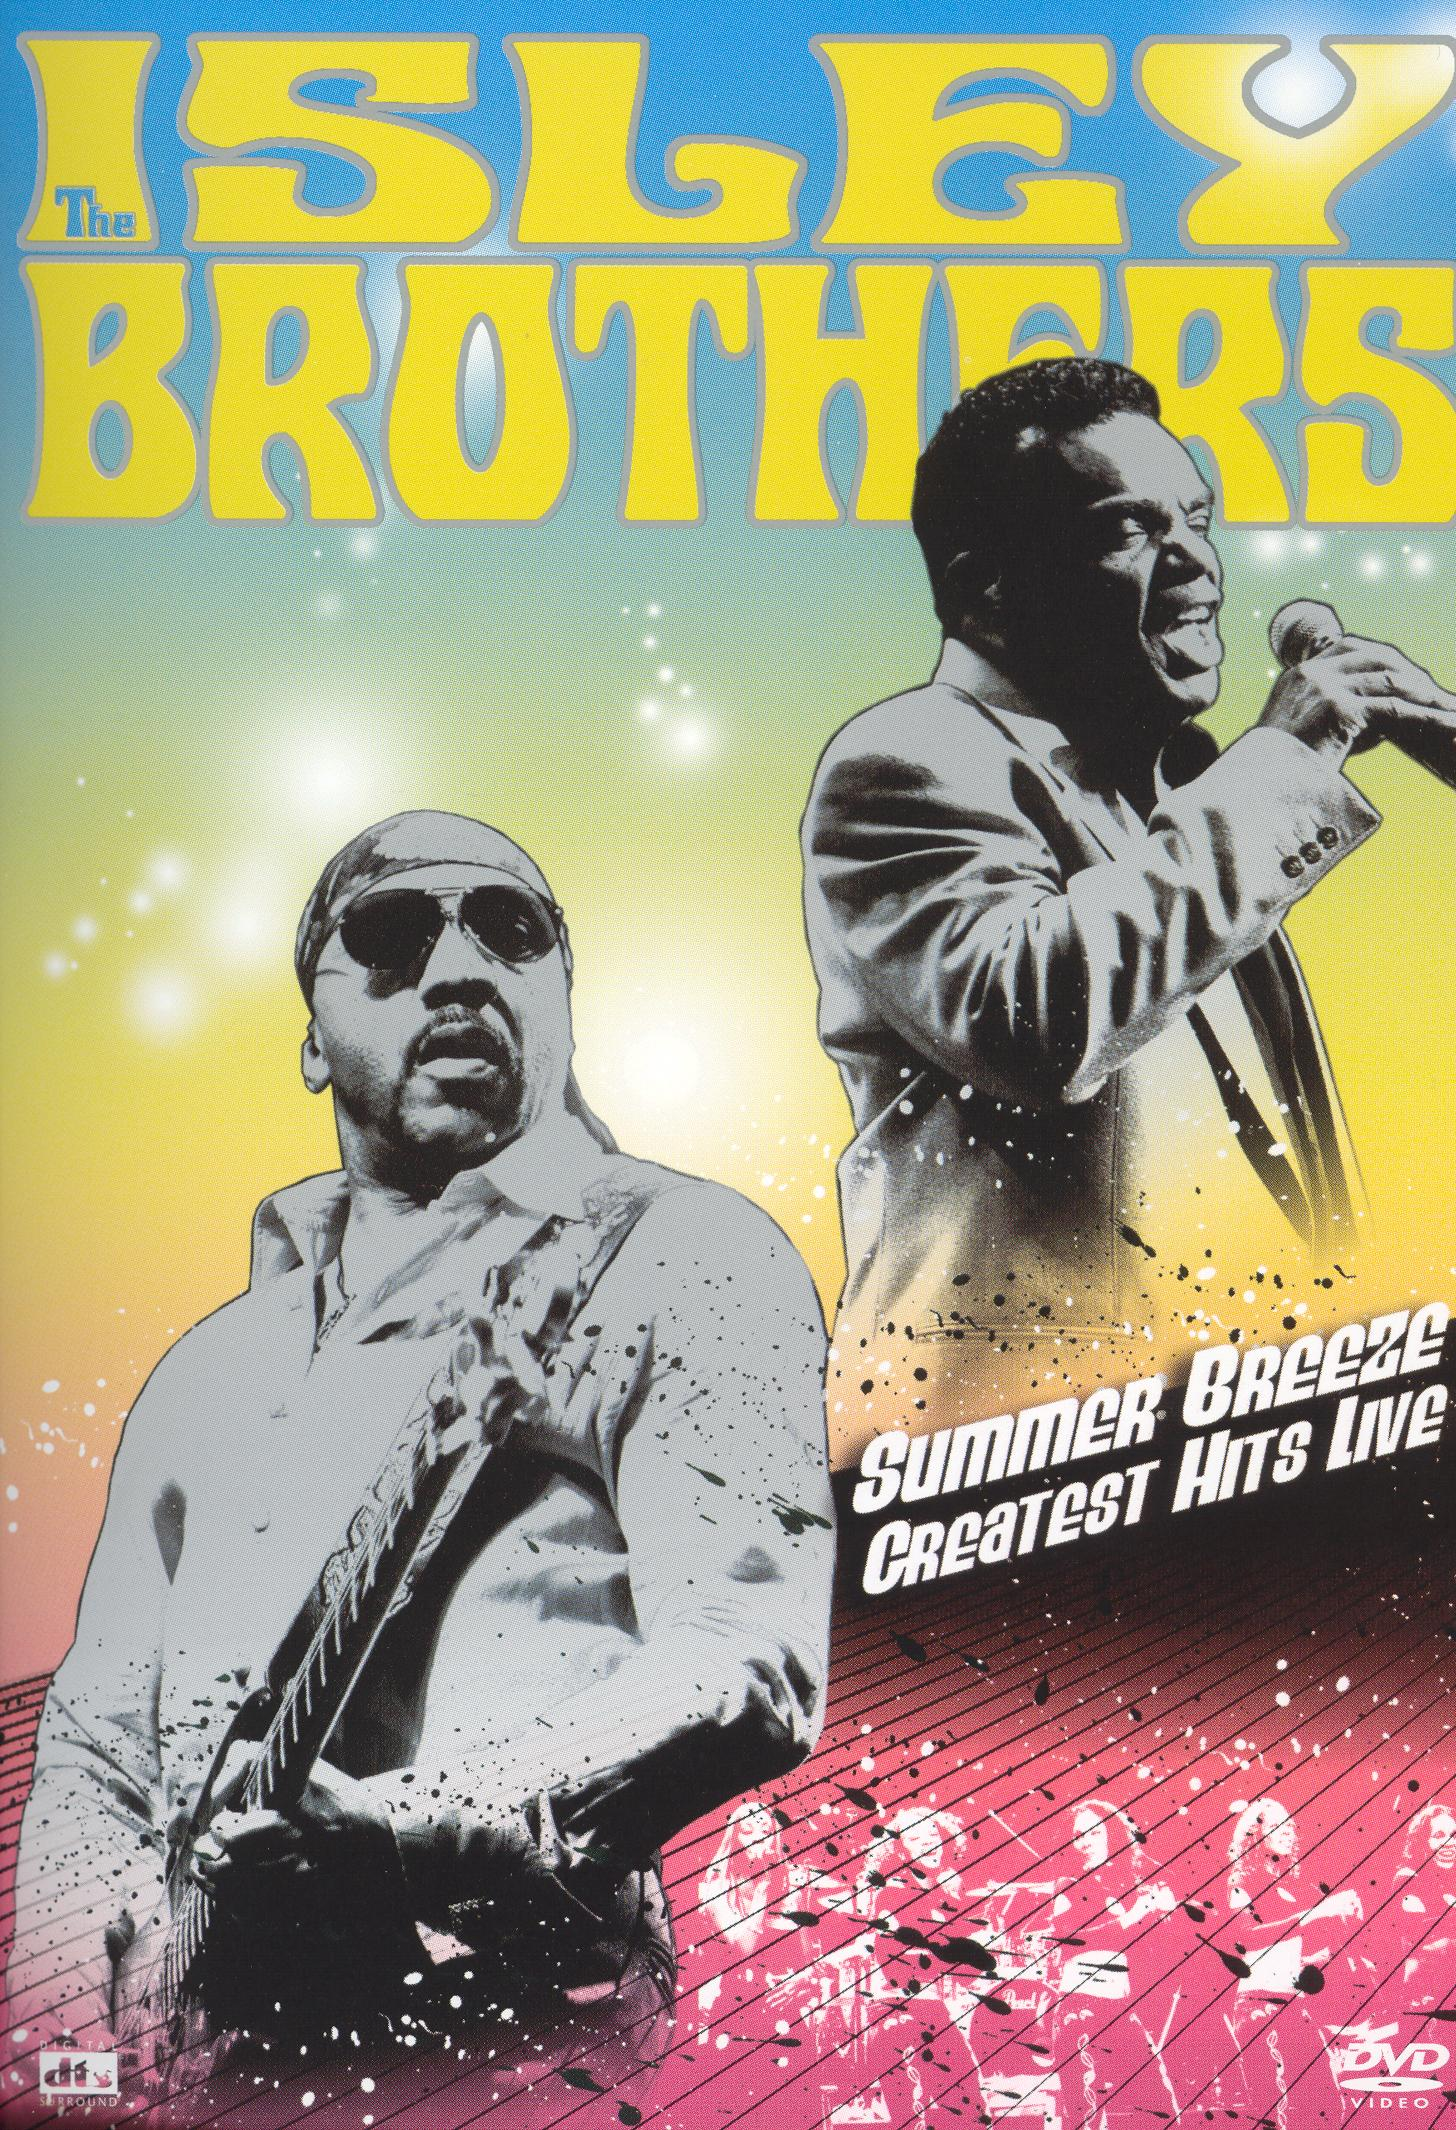 The Isley Brothers: Summer Breeze - The Greatest Hits Live